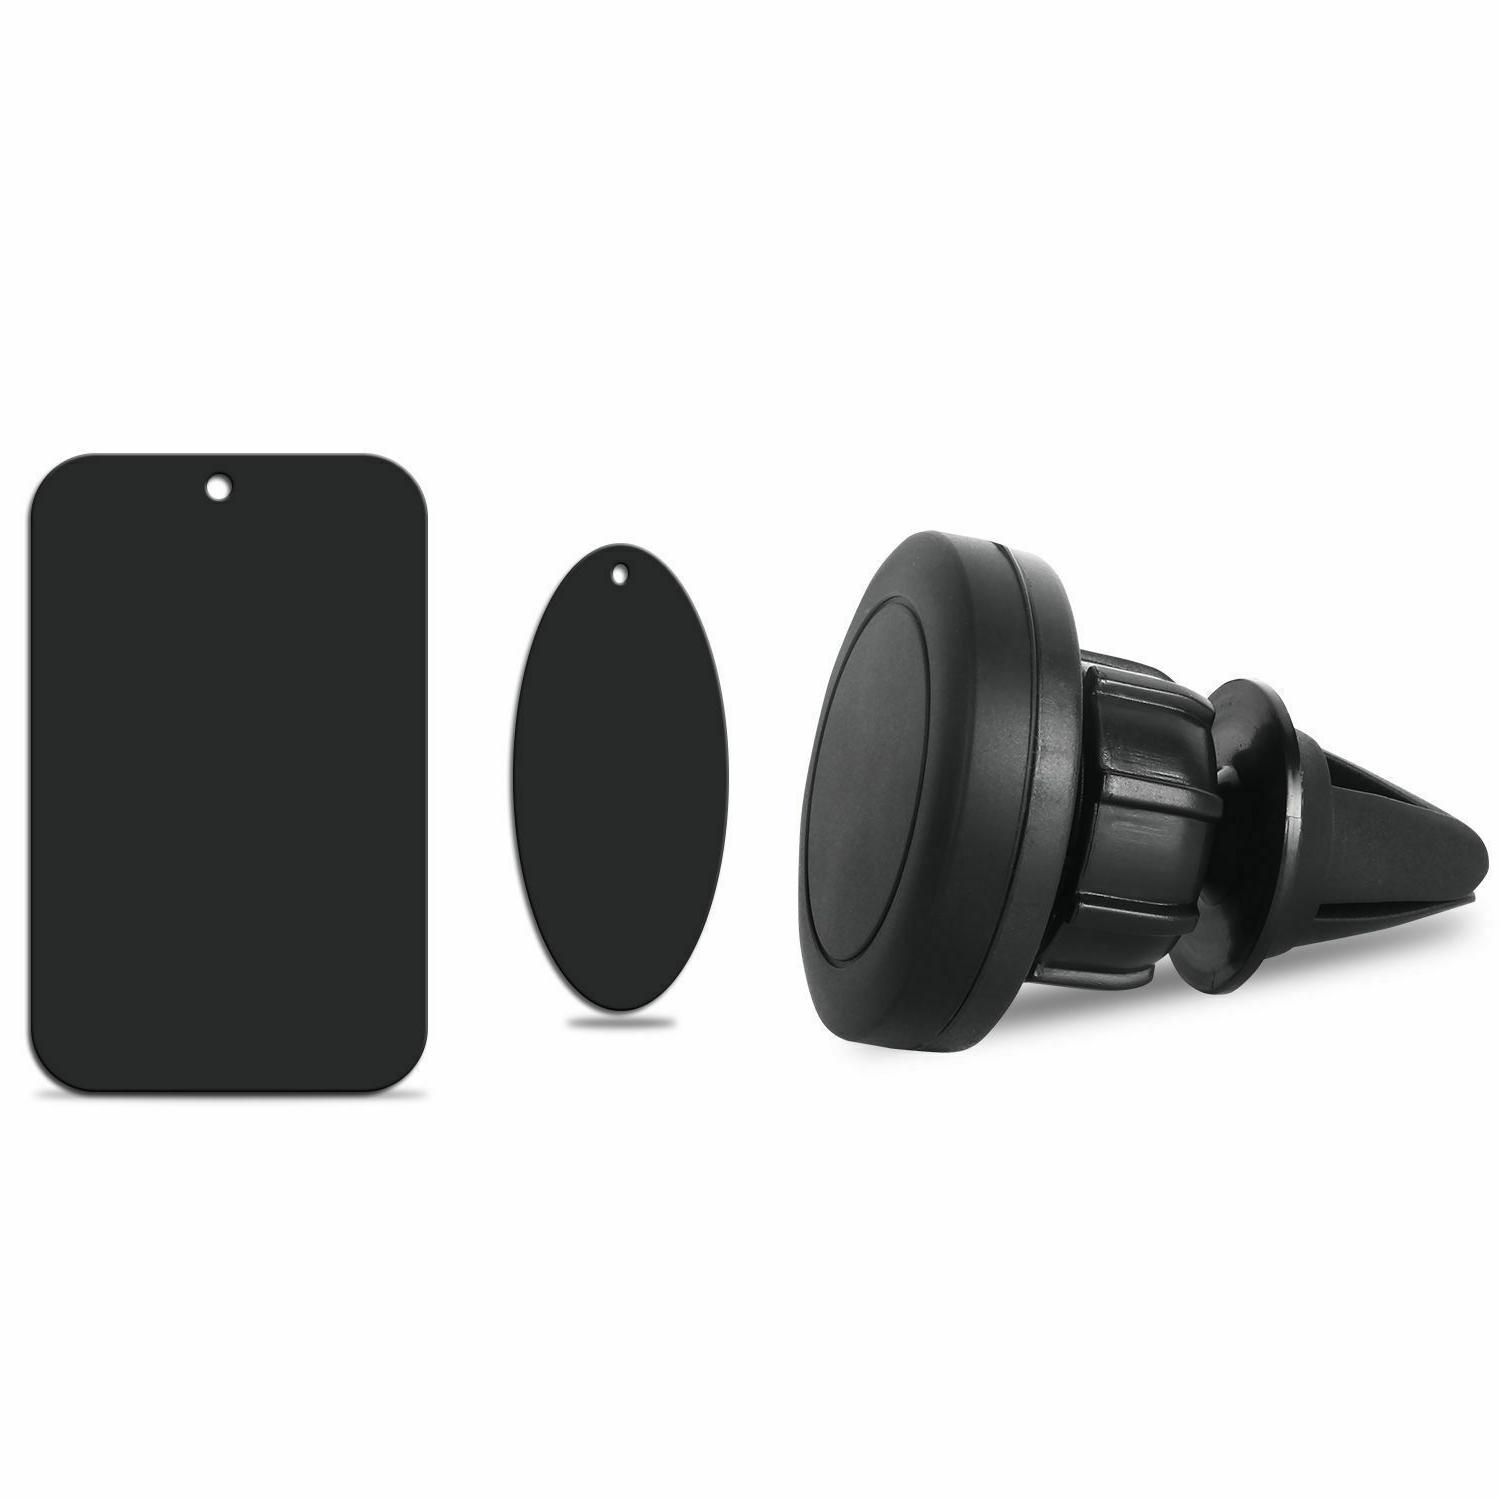 2-Pack Mount Air Stand Cell Phone iPhone 8